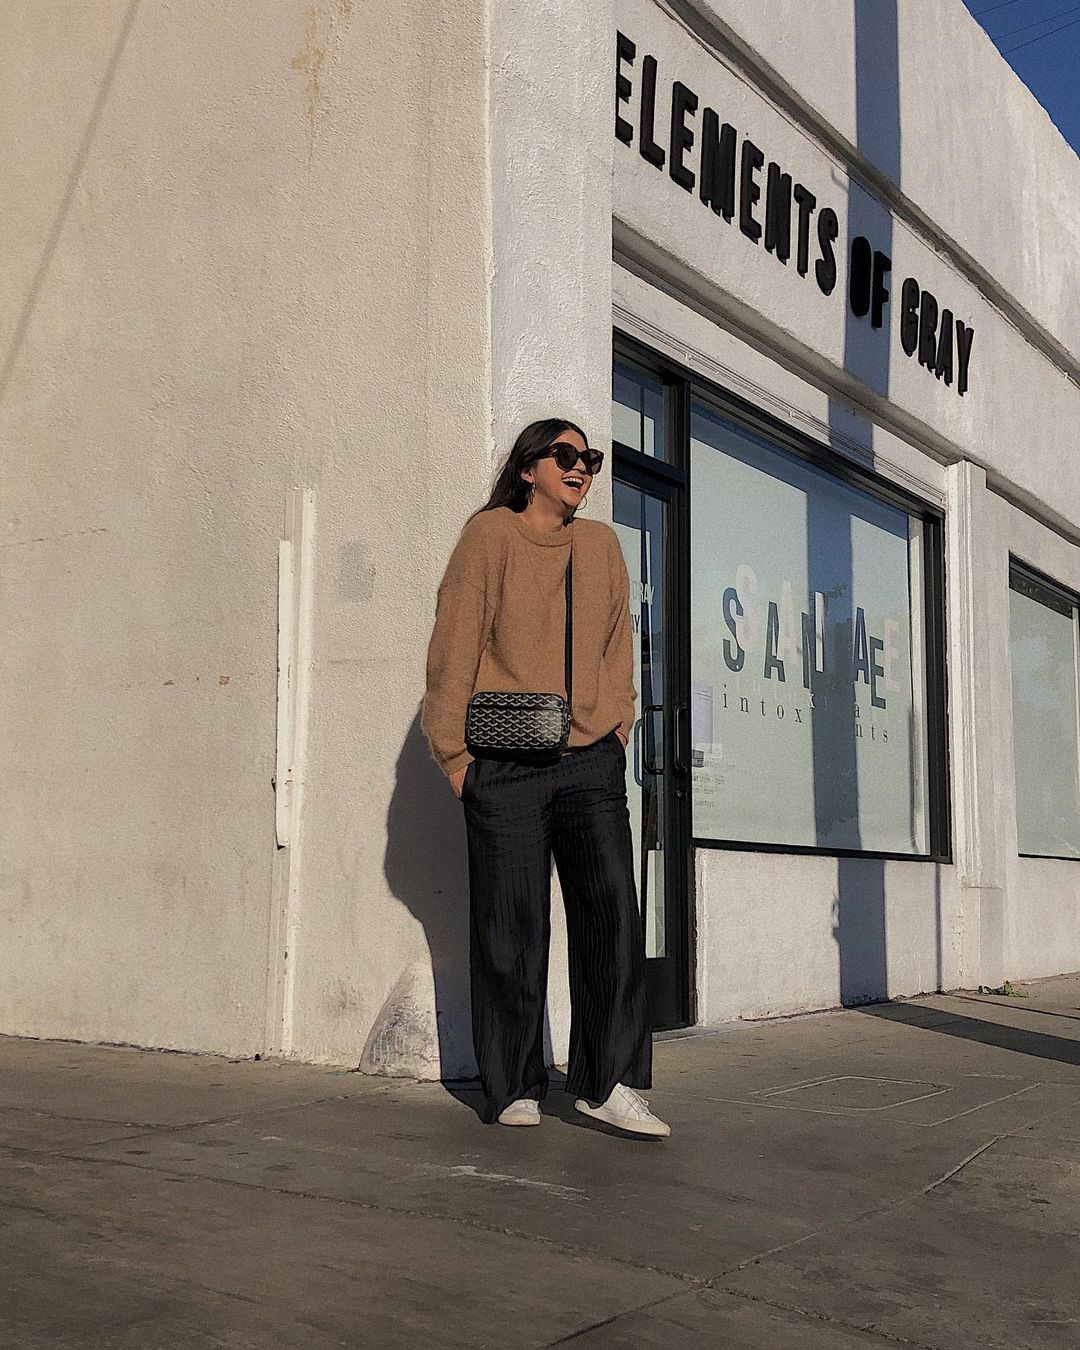 Effortless Casual Spring Outfit Idea —Annabel Ly in a camel sweater, crossbody bag, wide-leg pants, and white sneakers